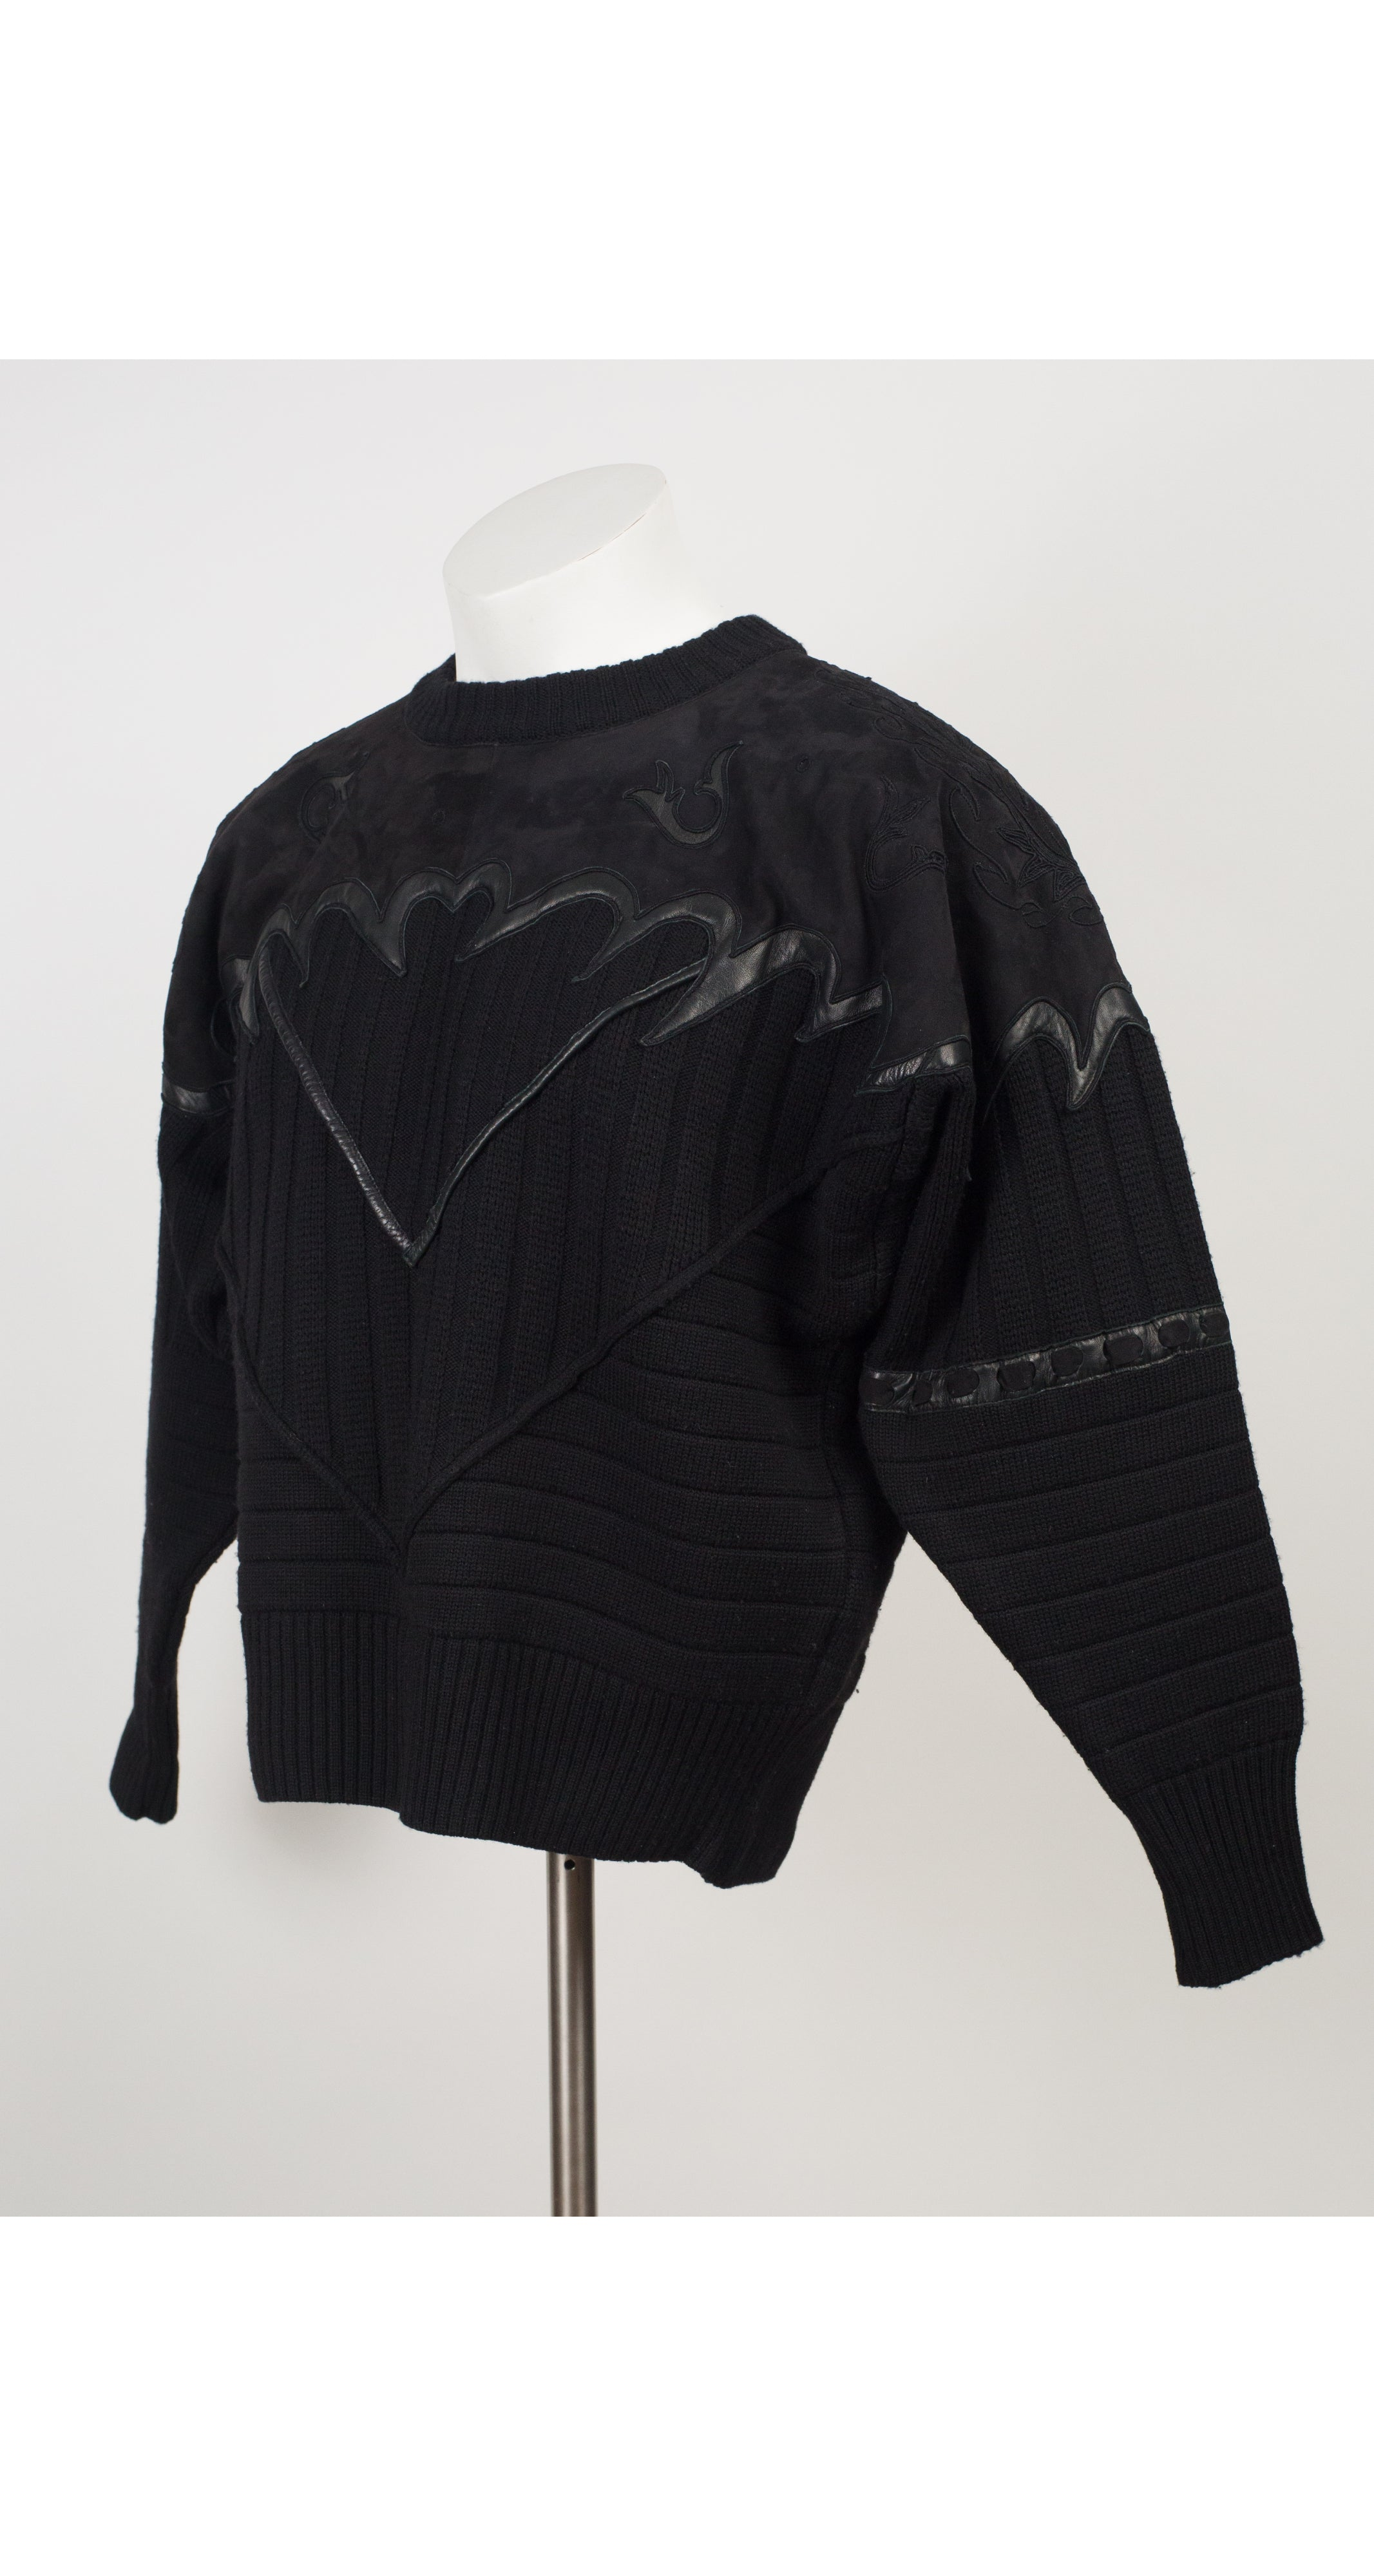 1984 F/W Ad Campaign Men's Suede & Wool Knit Sweater